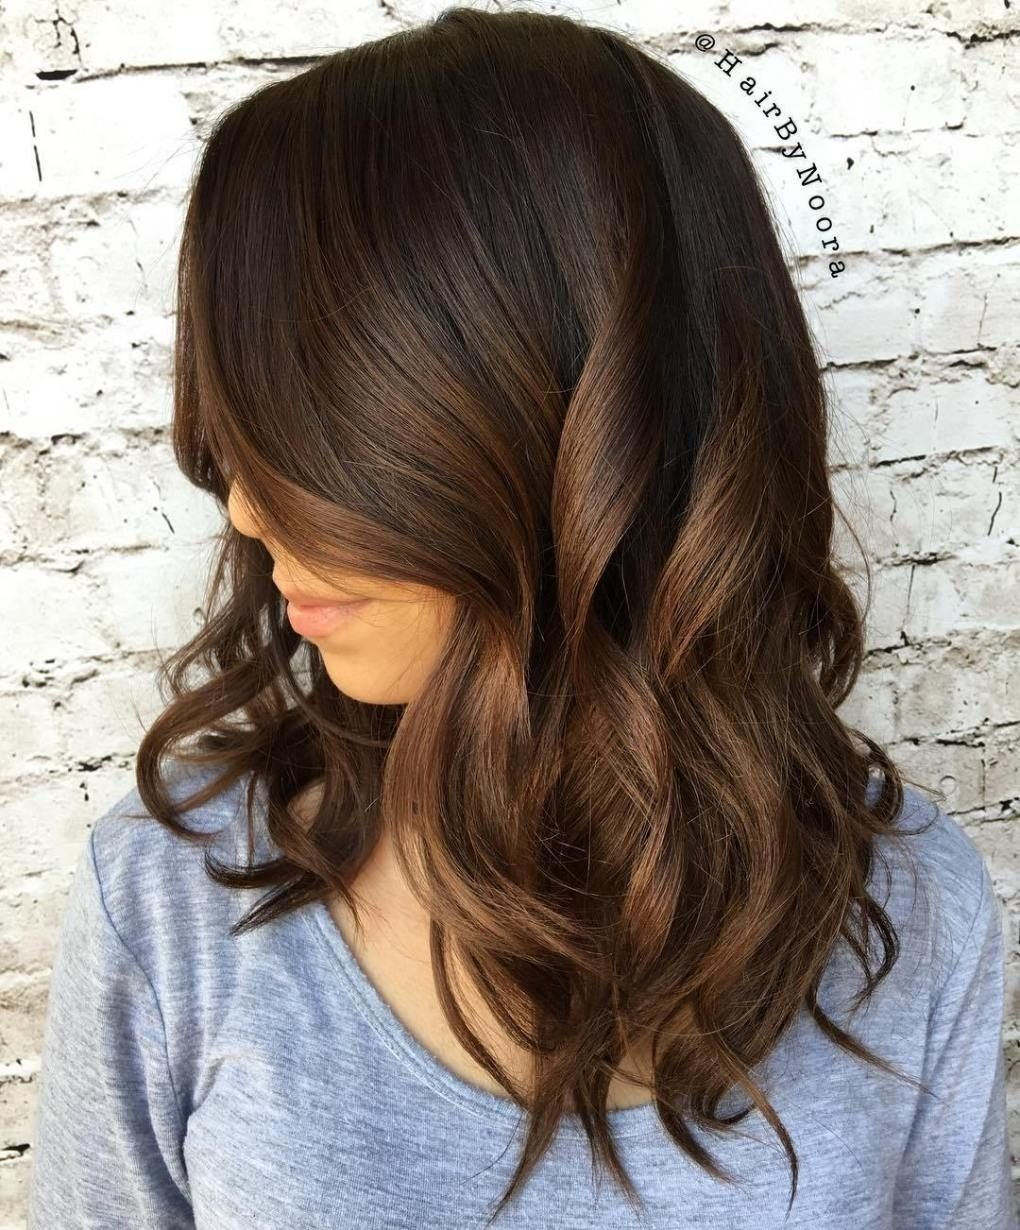 10 Awesome Hair Dye Ideas For Brunettes 60 chocolate brown hair color ideas for brunettes